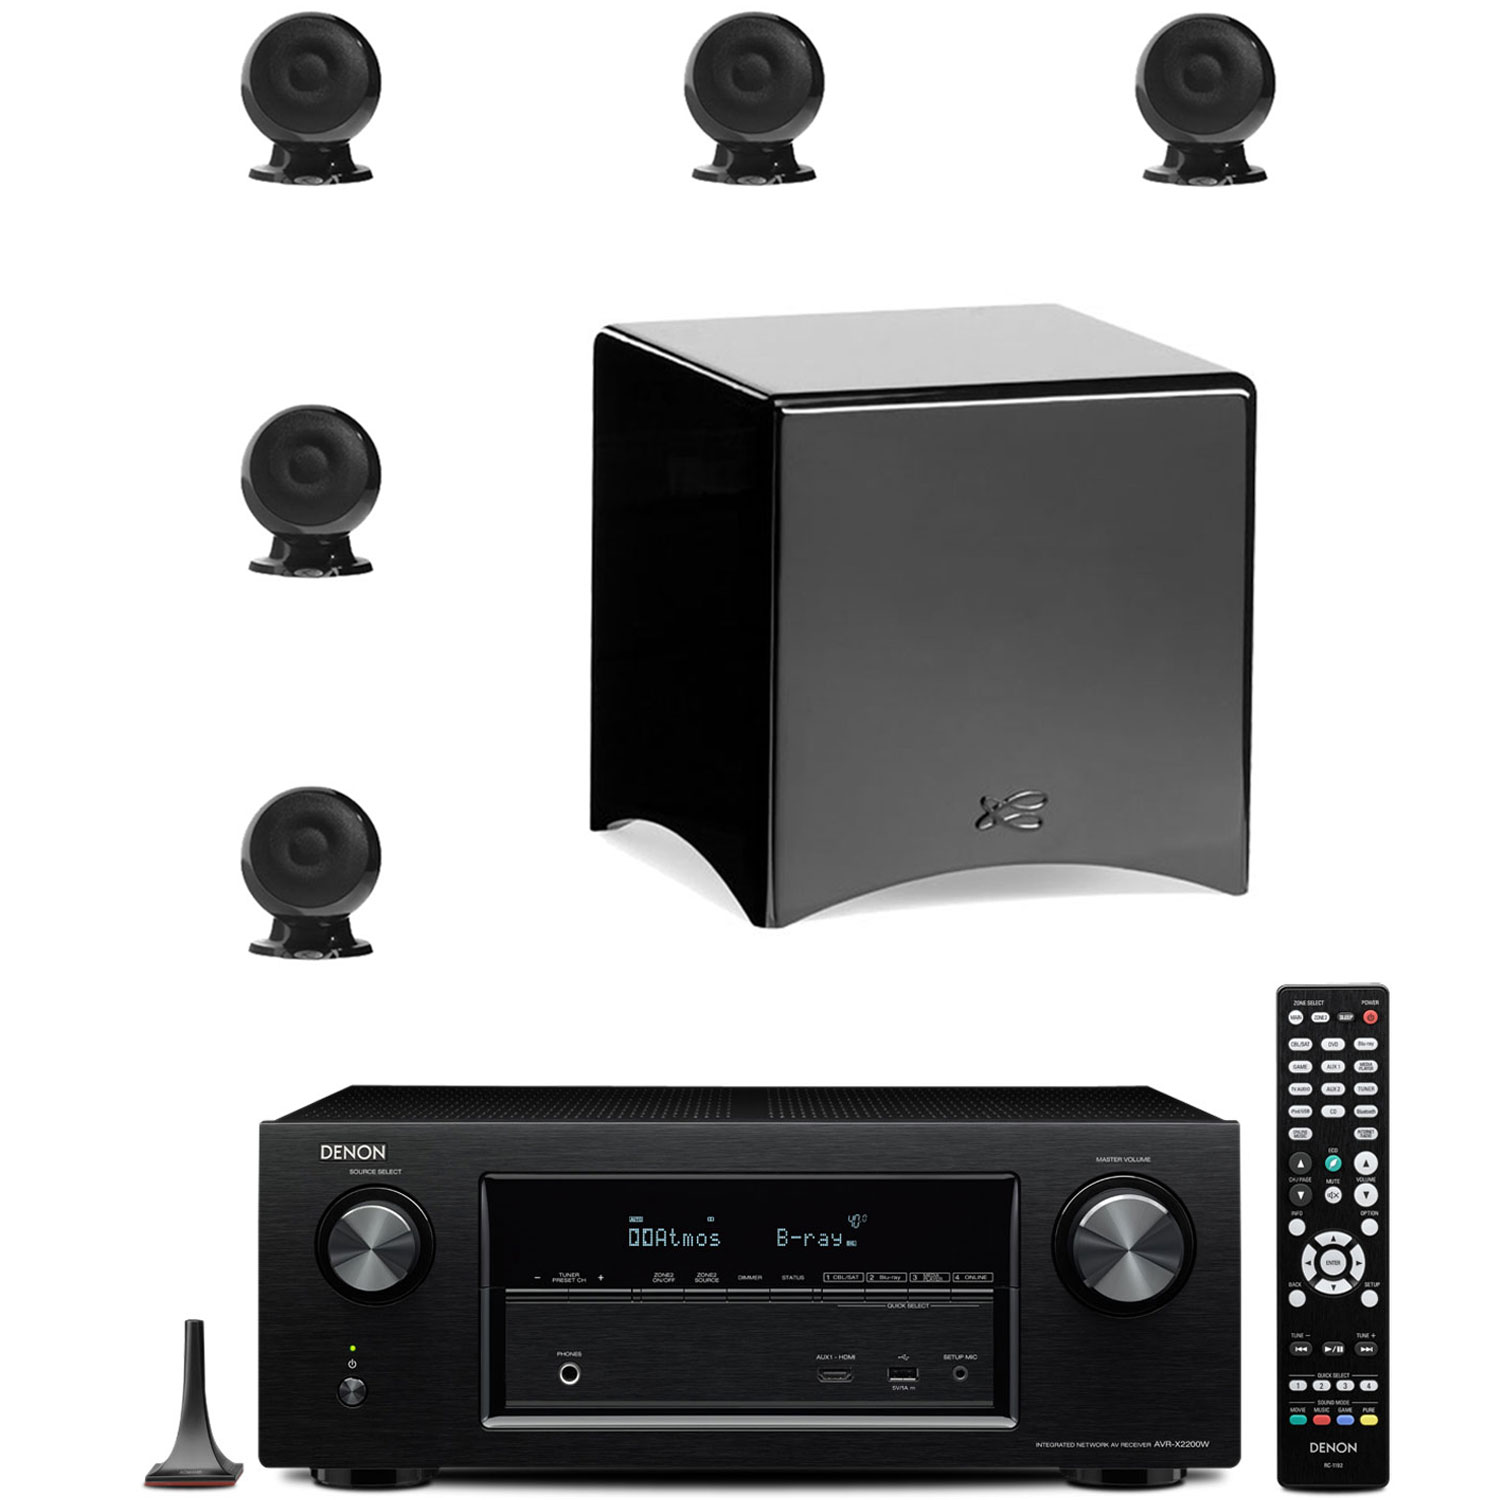 denon avr x2200w noir cabasse pack eole 3 5 1 ws noir ensemble home cin ma denon sur. Black Bedroom Furniture Sets. Home Design Ideas